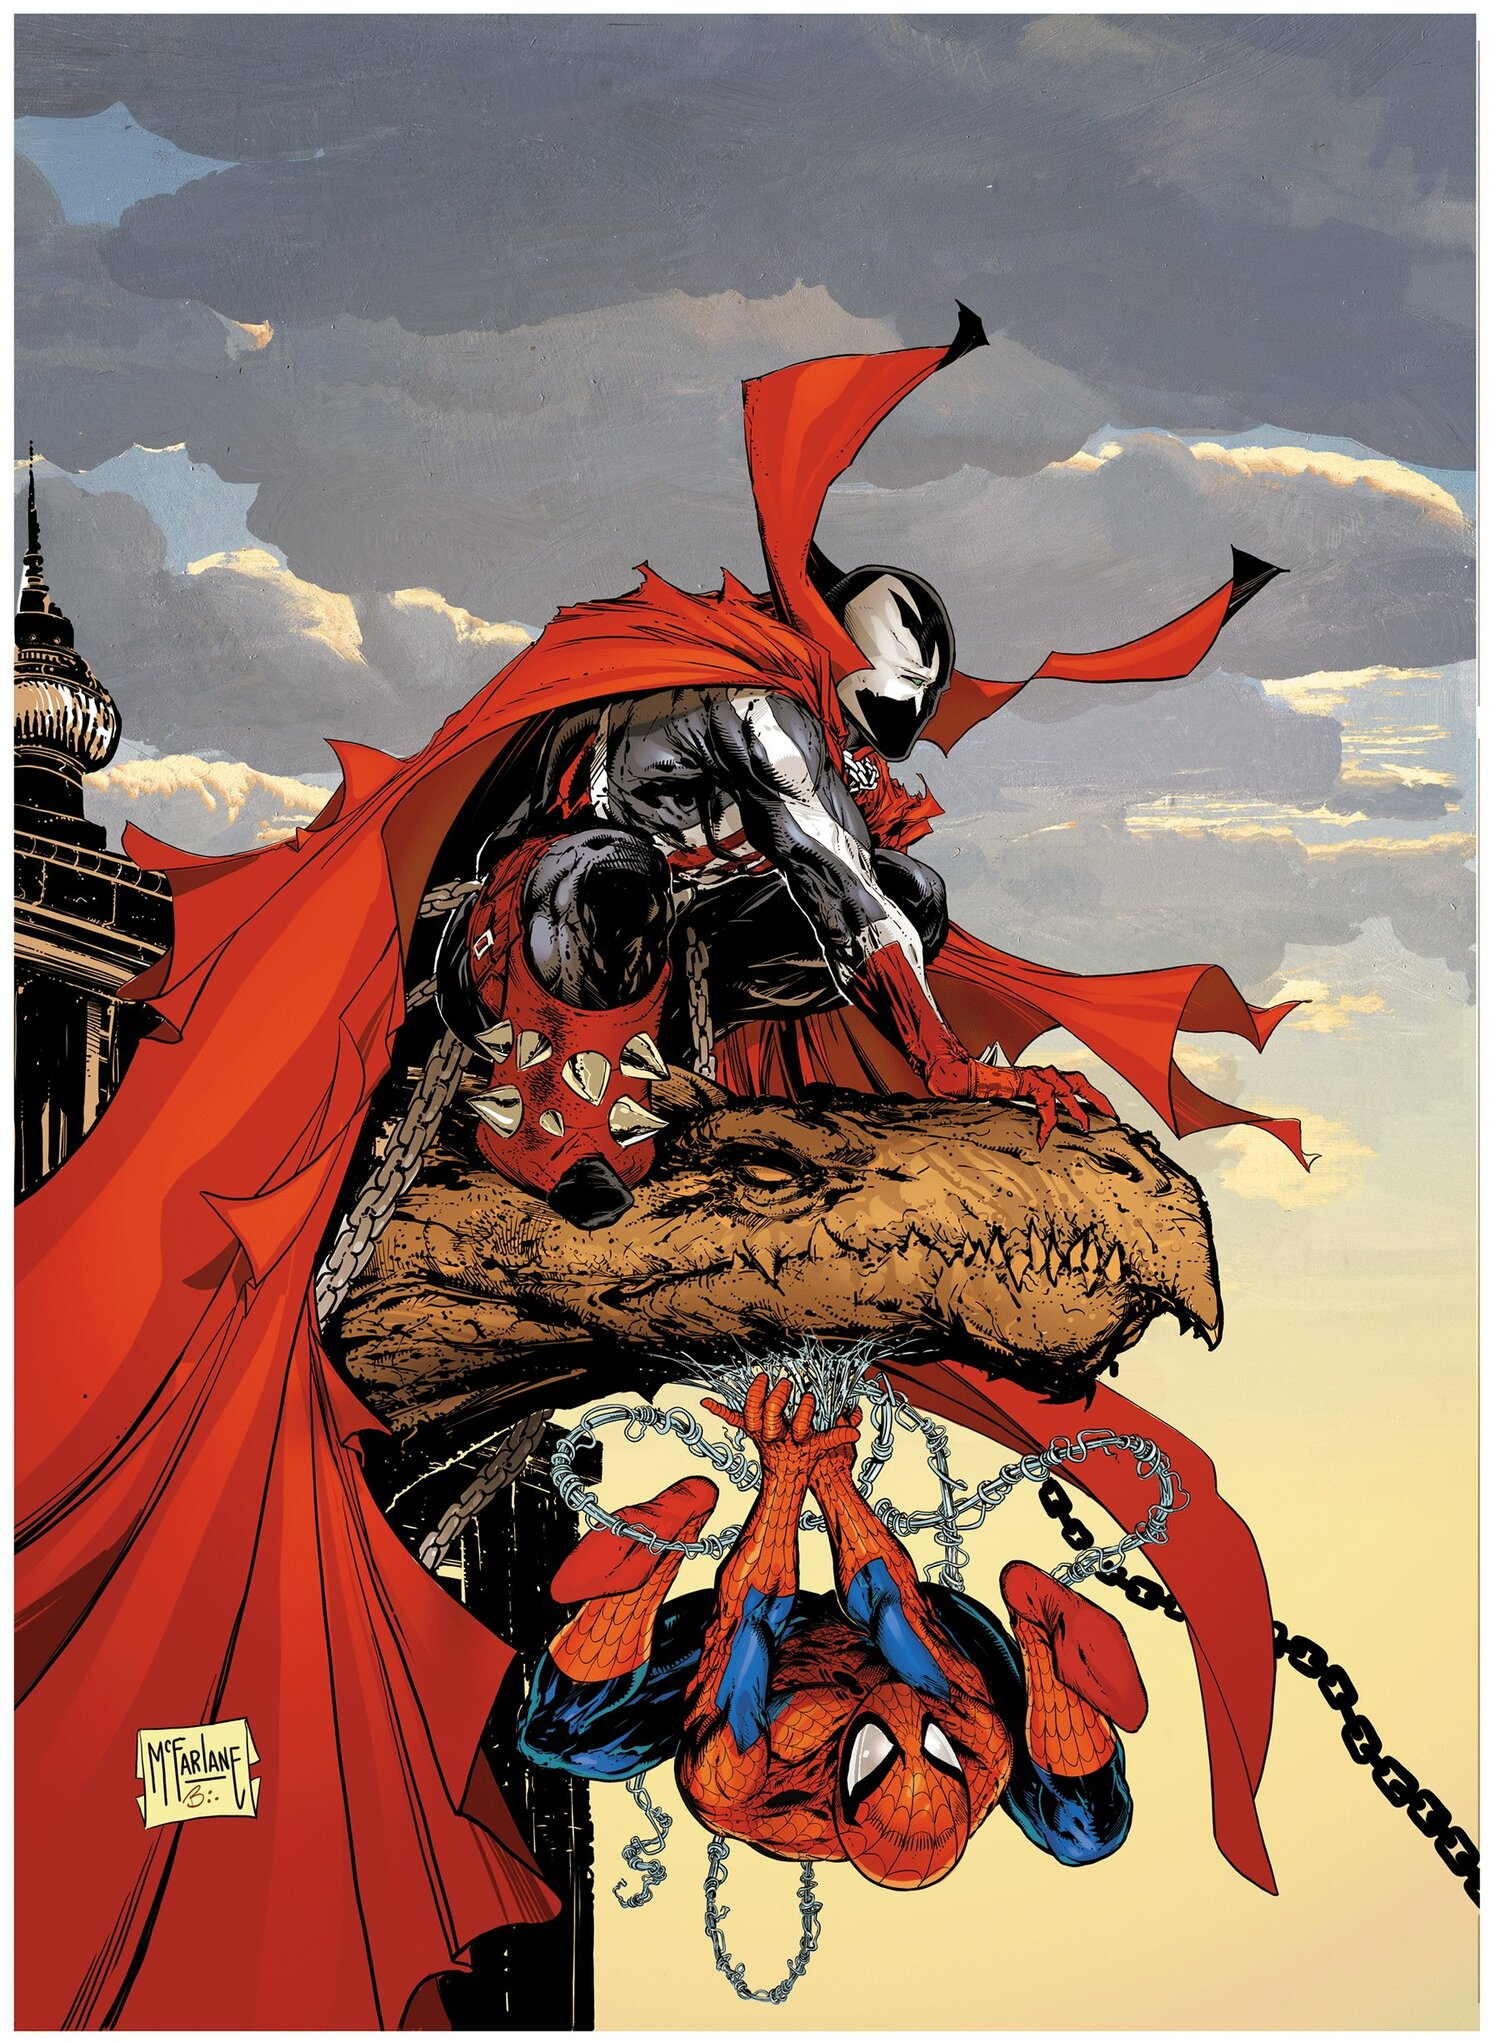 Todd Mcfarlane Brings Spawn And Spider Man Together For The First Time In Comic Art Geektyrant